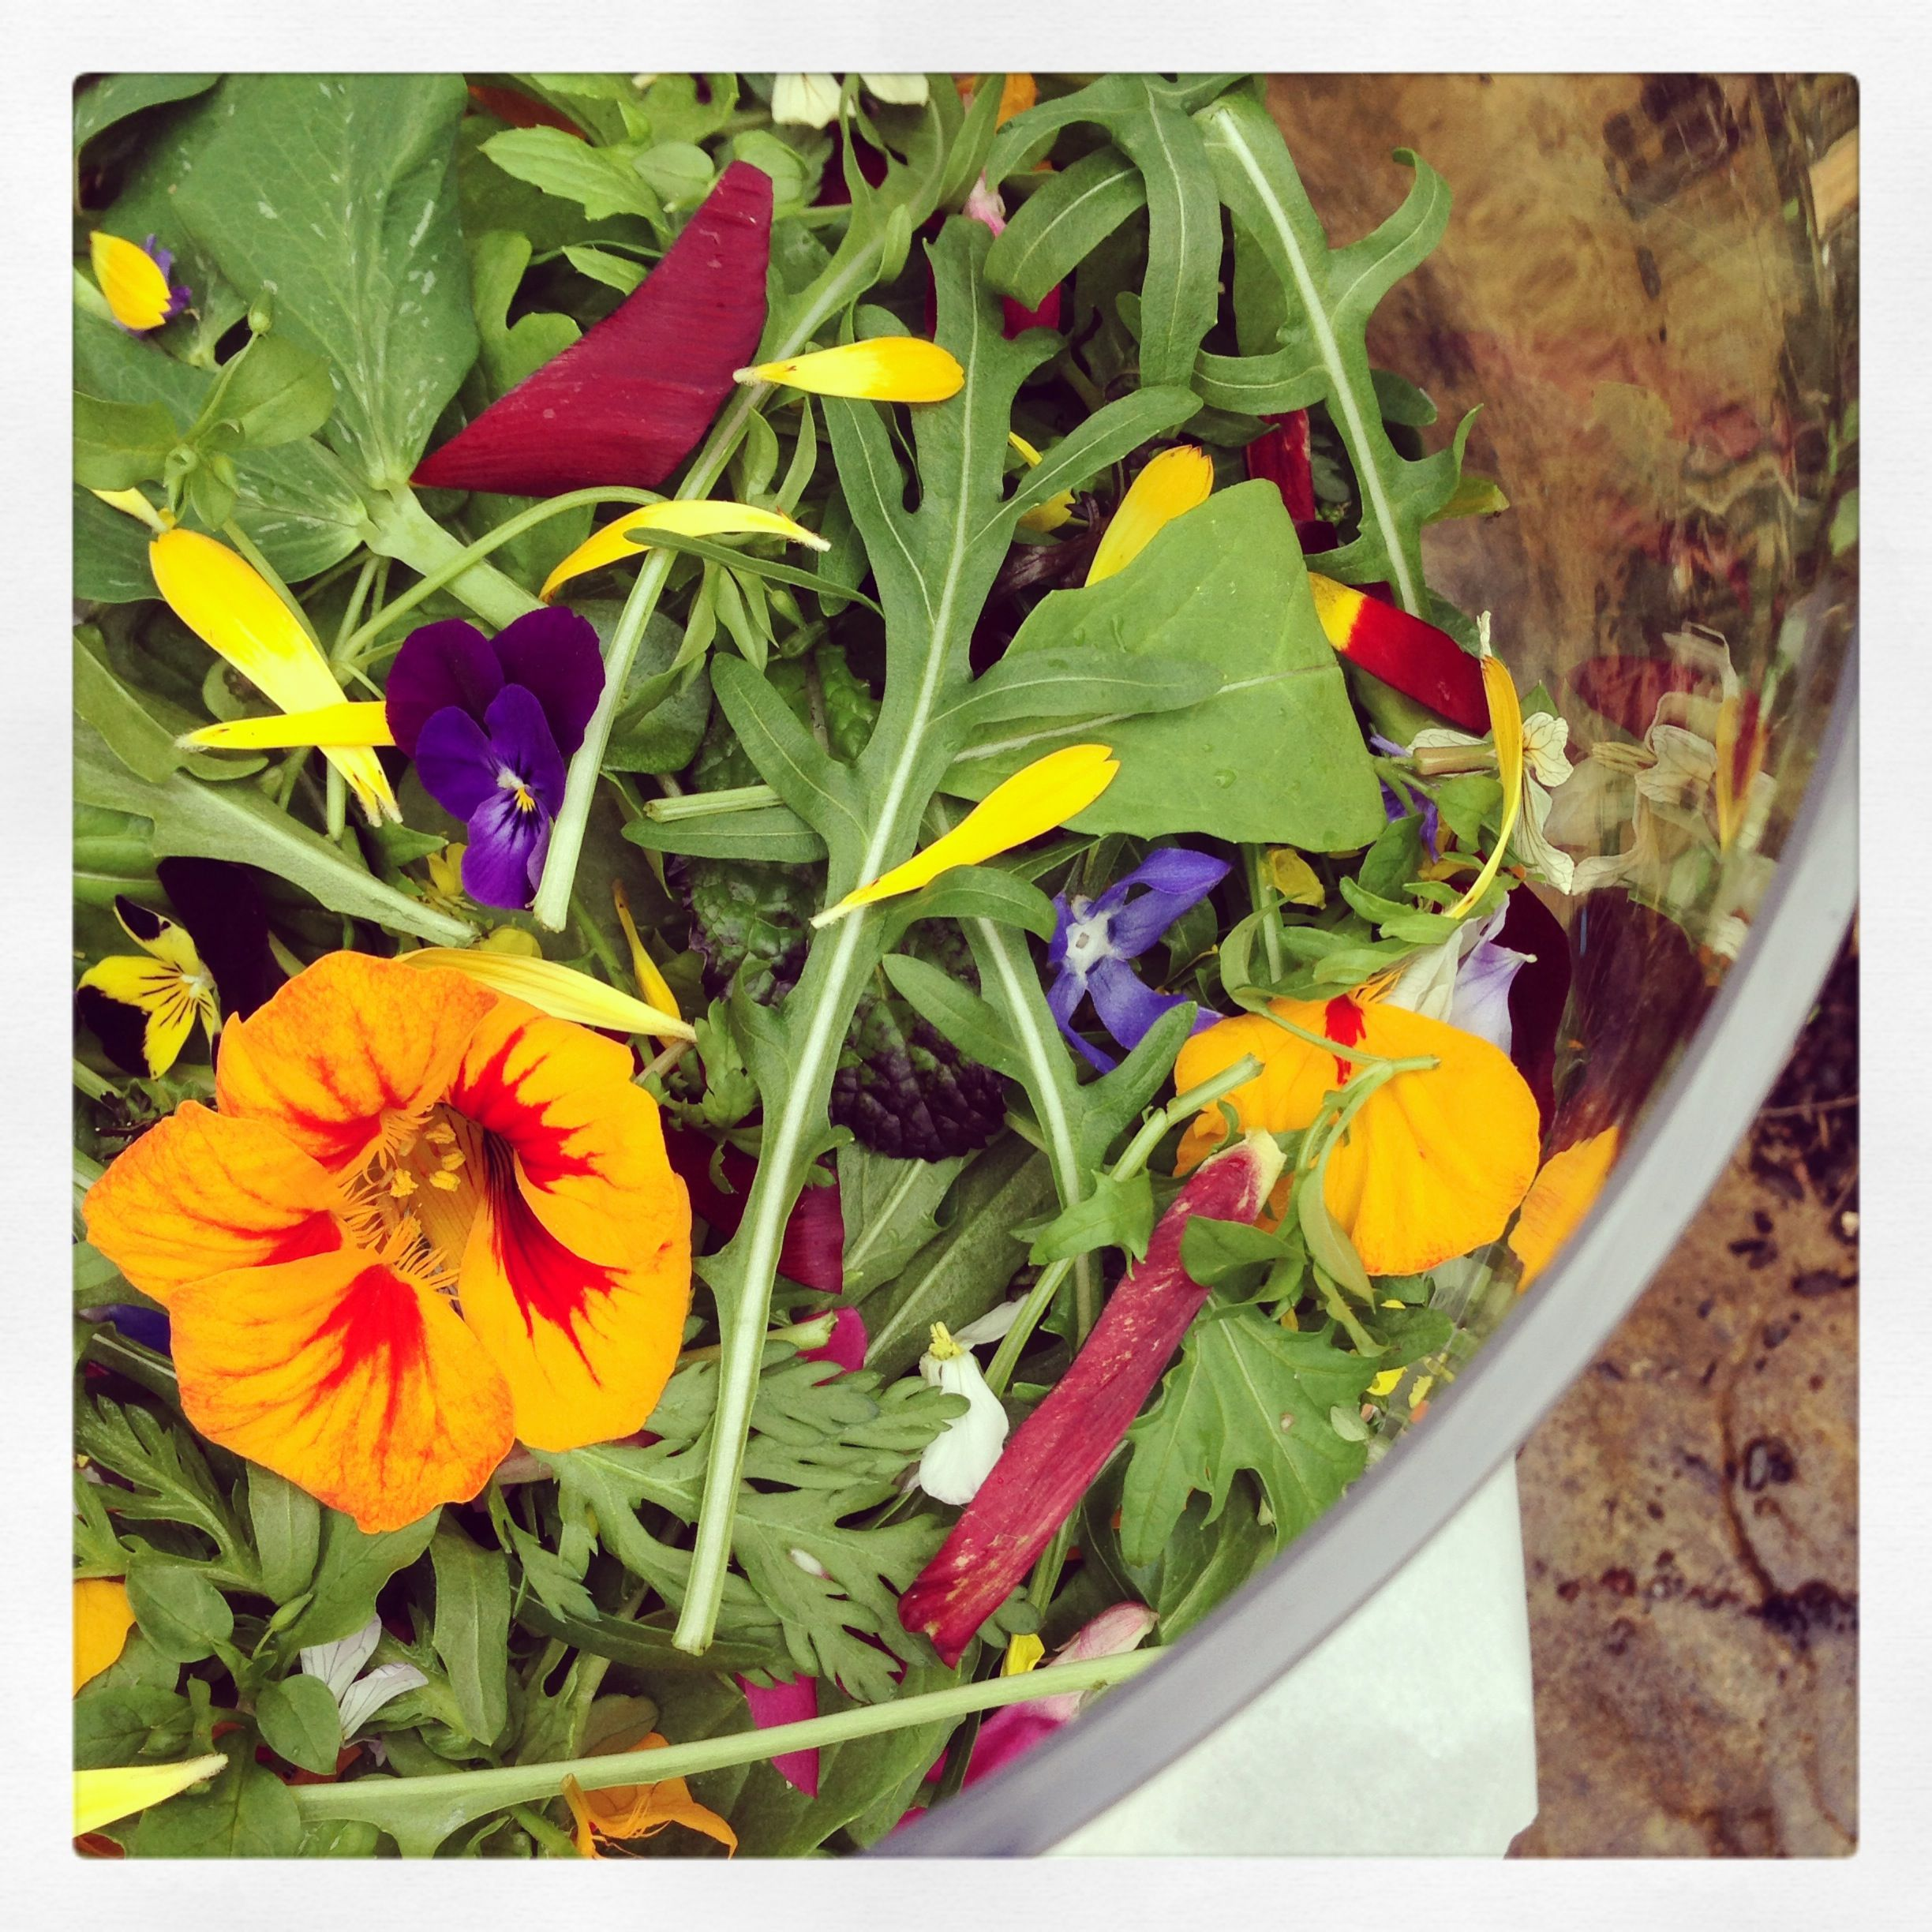 Spring Salad With Edible Flowers Including Tulip Petals Spring Salad Edible Flowers Edible